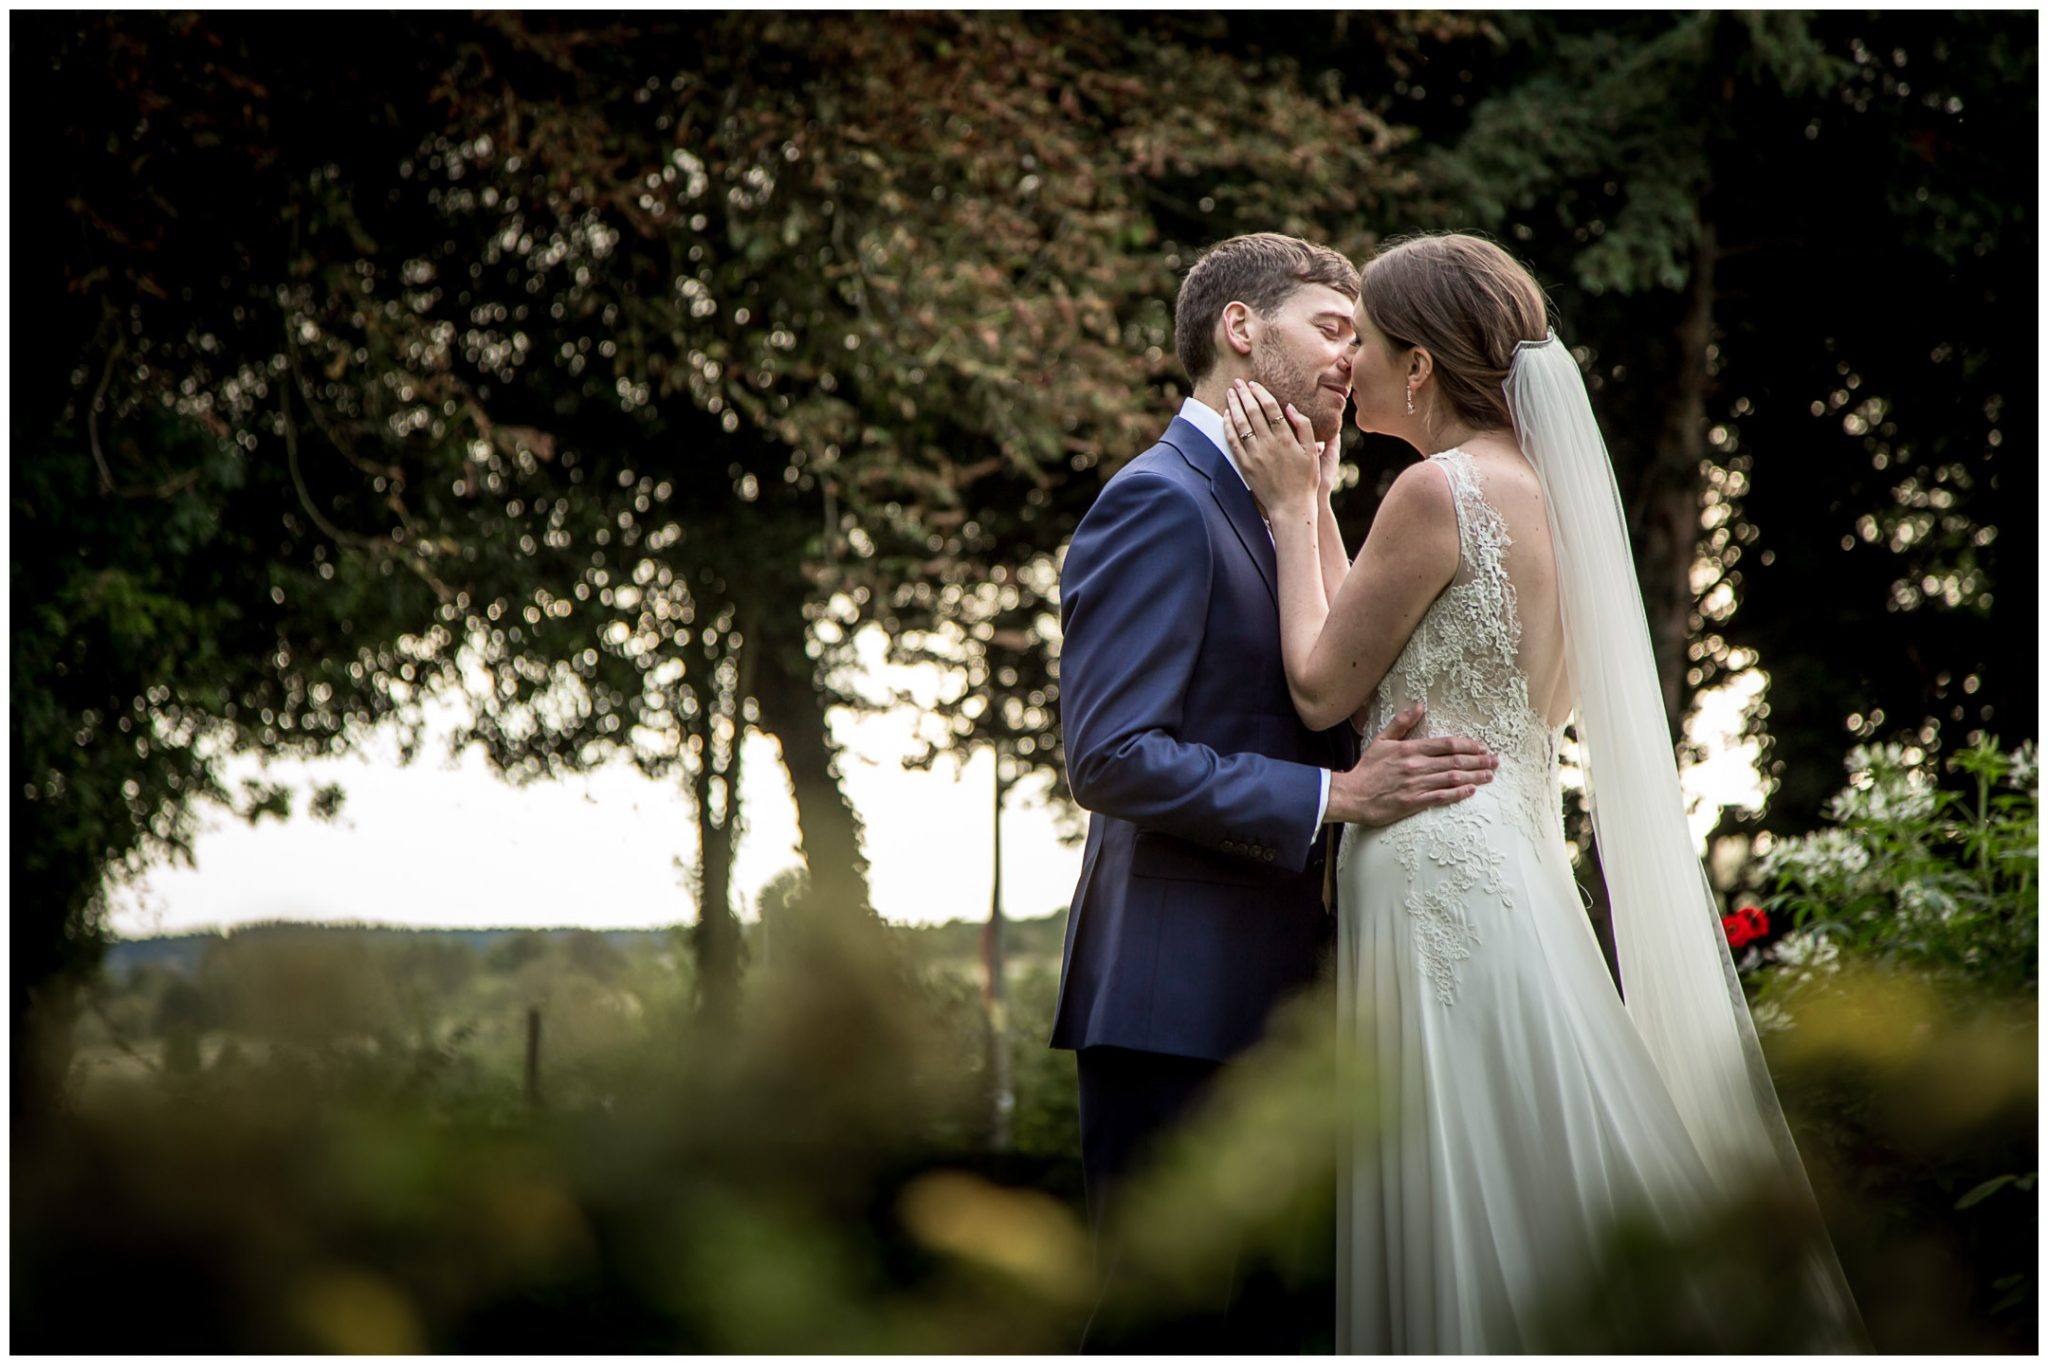 Old Alresford Place wedding photography couple kissing in gardens